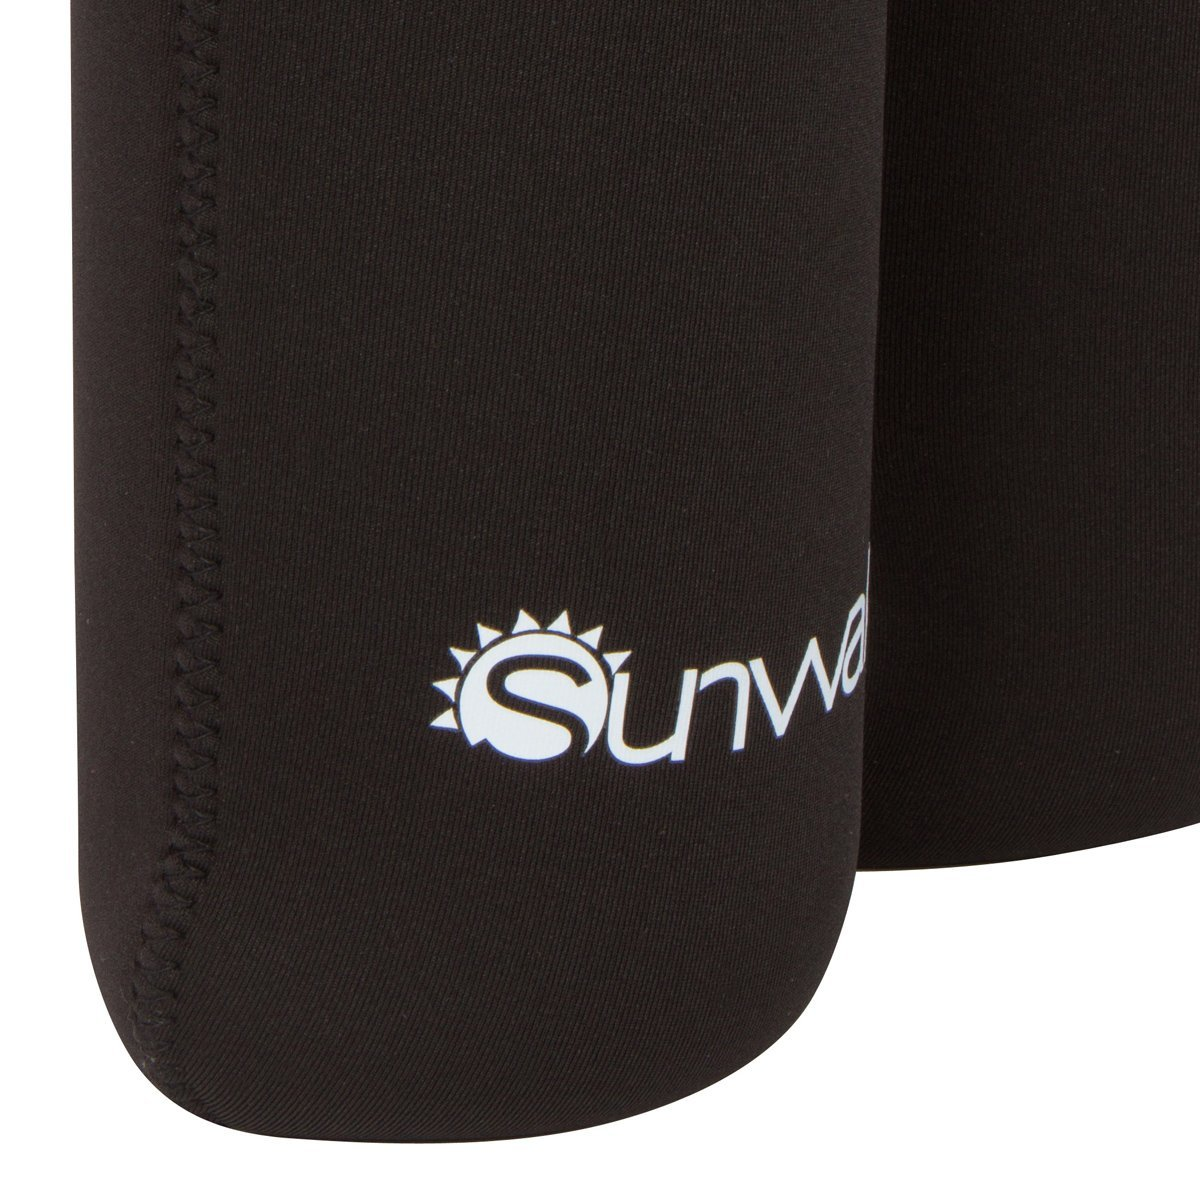 Sunwalla Insulated Wine Carrier – Neoprene Tote Bag Holds 2 Bottles of Wine – Secure Carry Handle